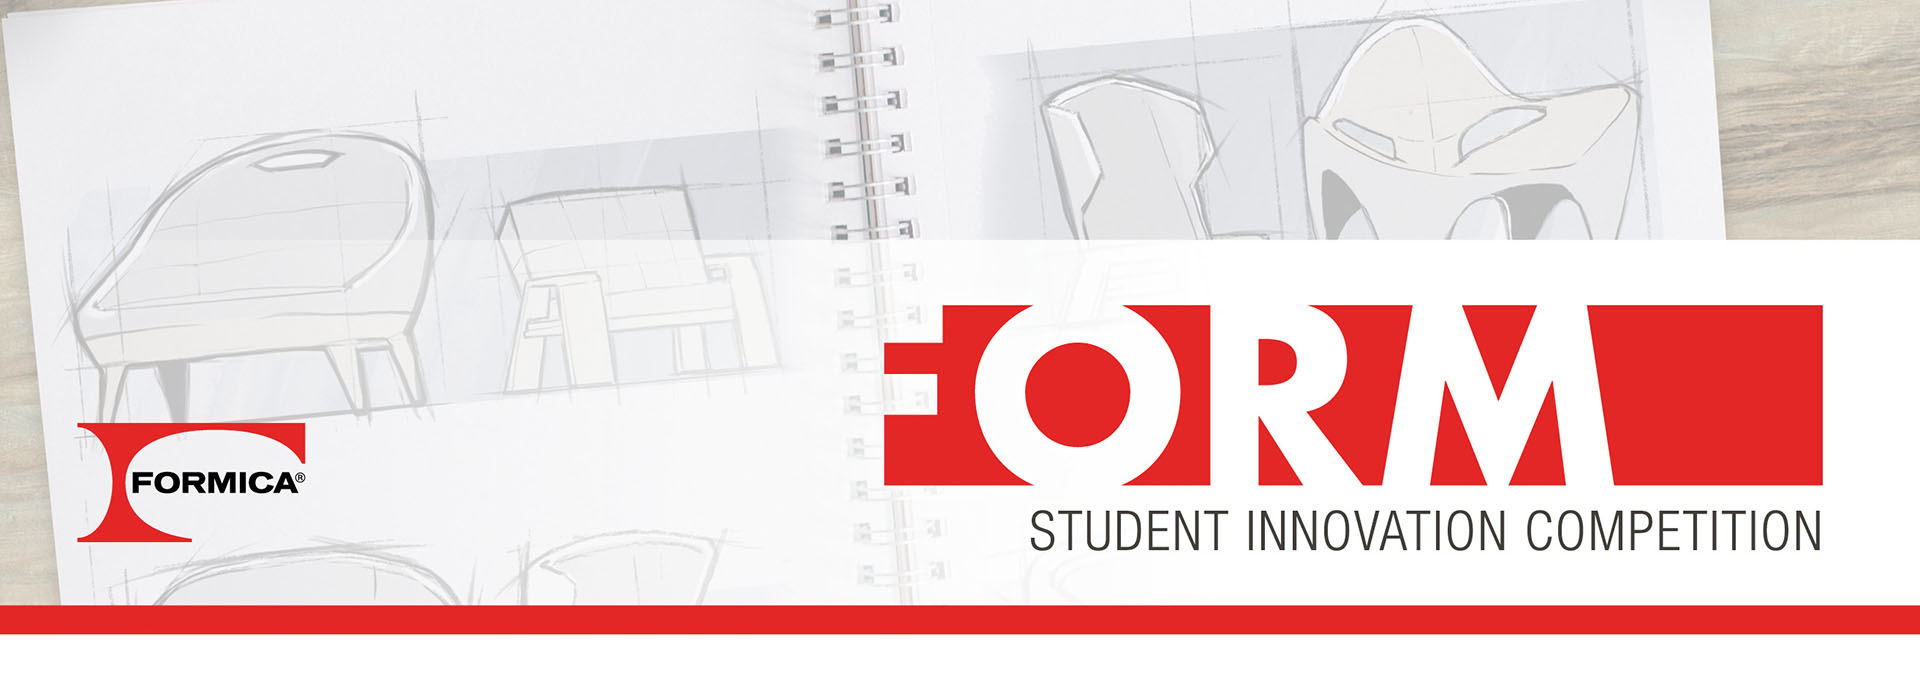 FORM Student Innovation Competition by Formica Group